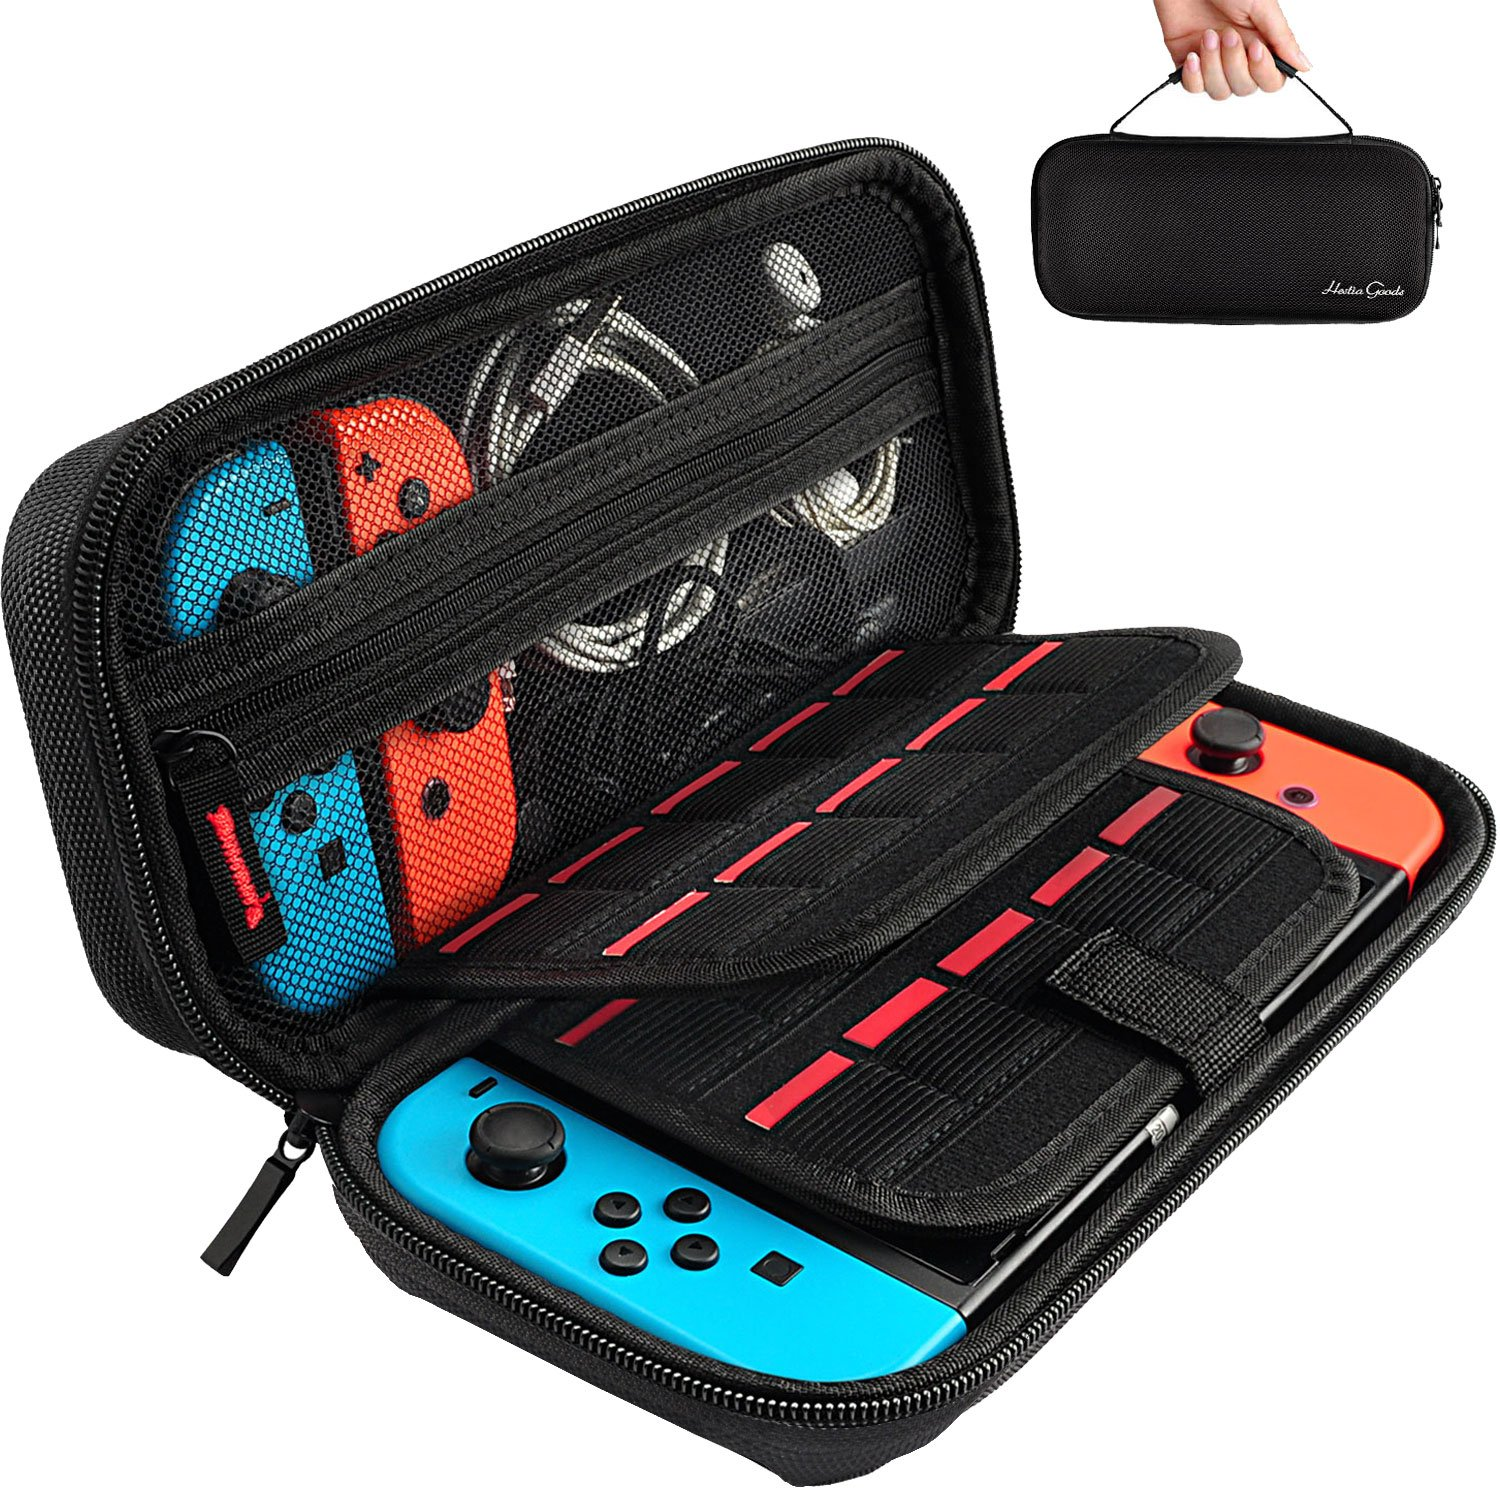 Carrying Case for Nintendo Switch with 20 Game Cartridges, Protective Hard Shell Travel Carrying Case Pouch for Nintendo Switch Console & Accessories, Black product image